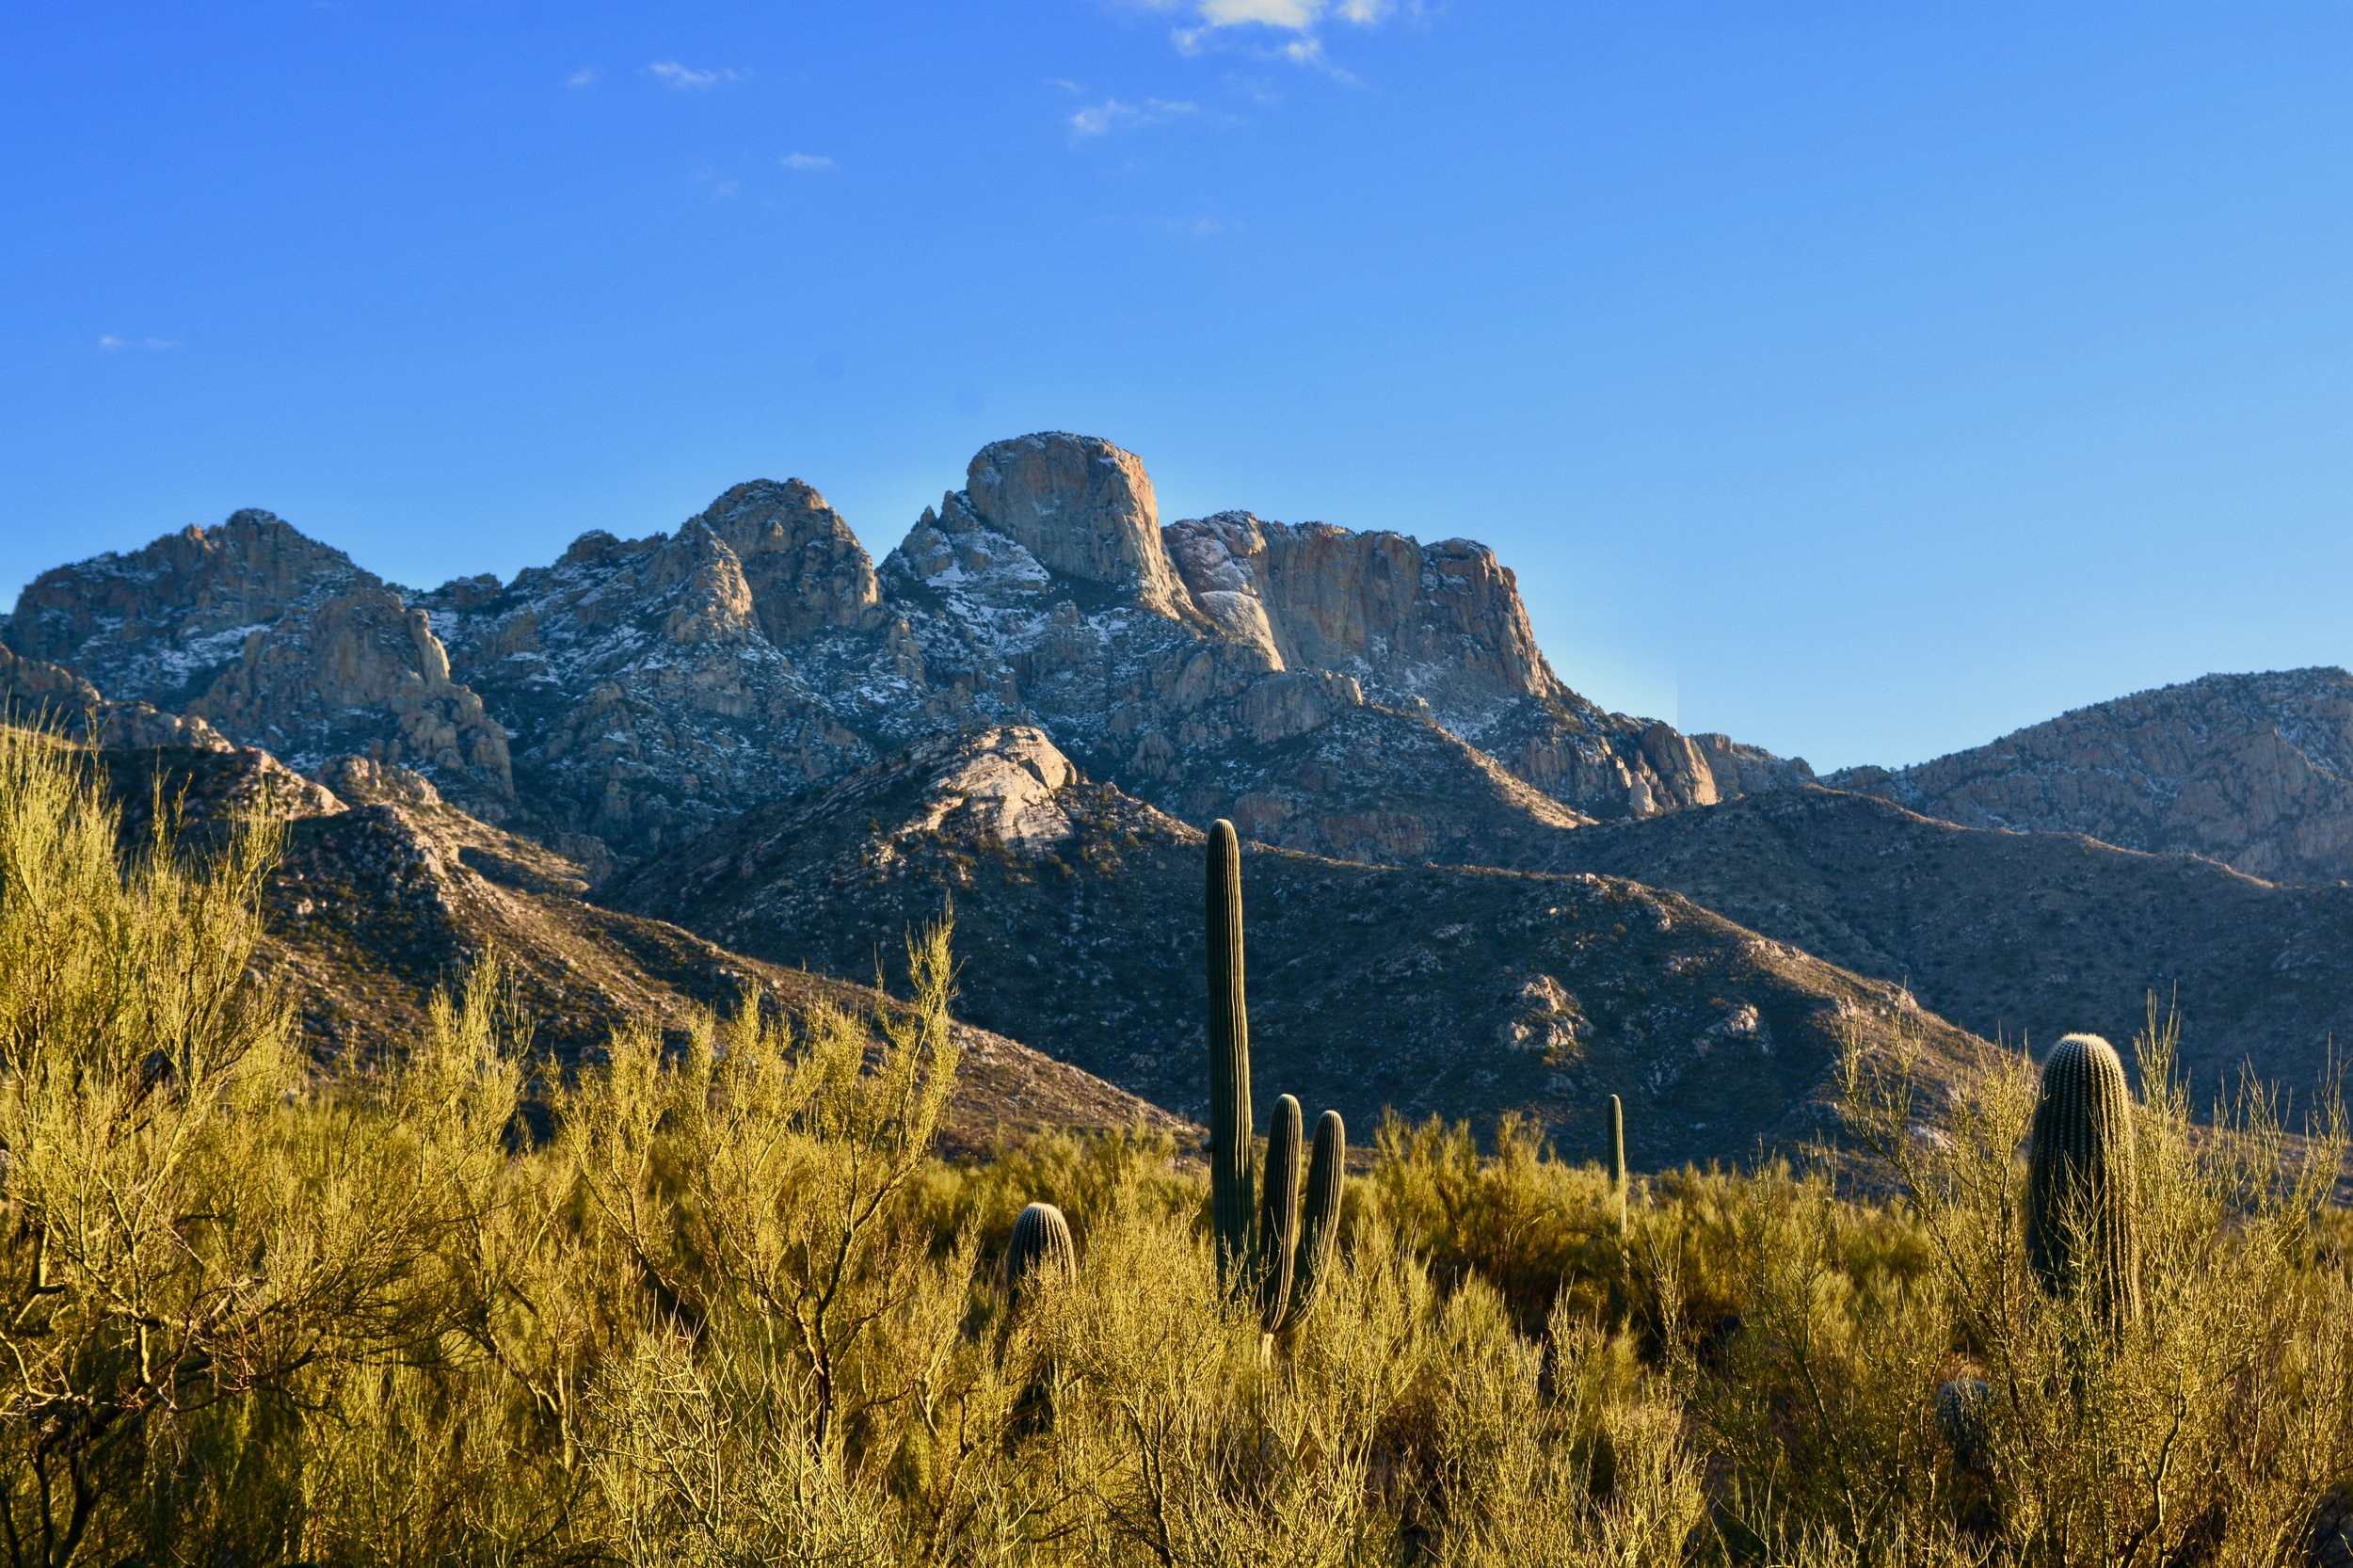 The snowy Catalina Mountains, February 28, 2018